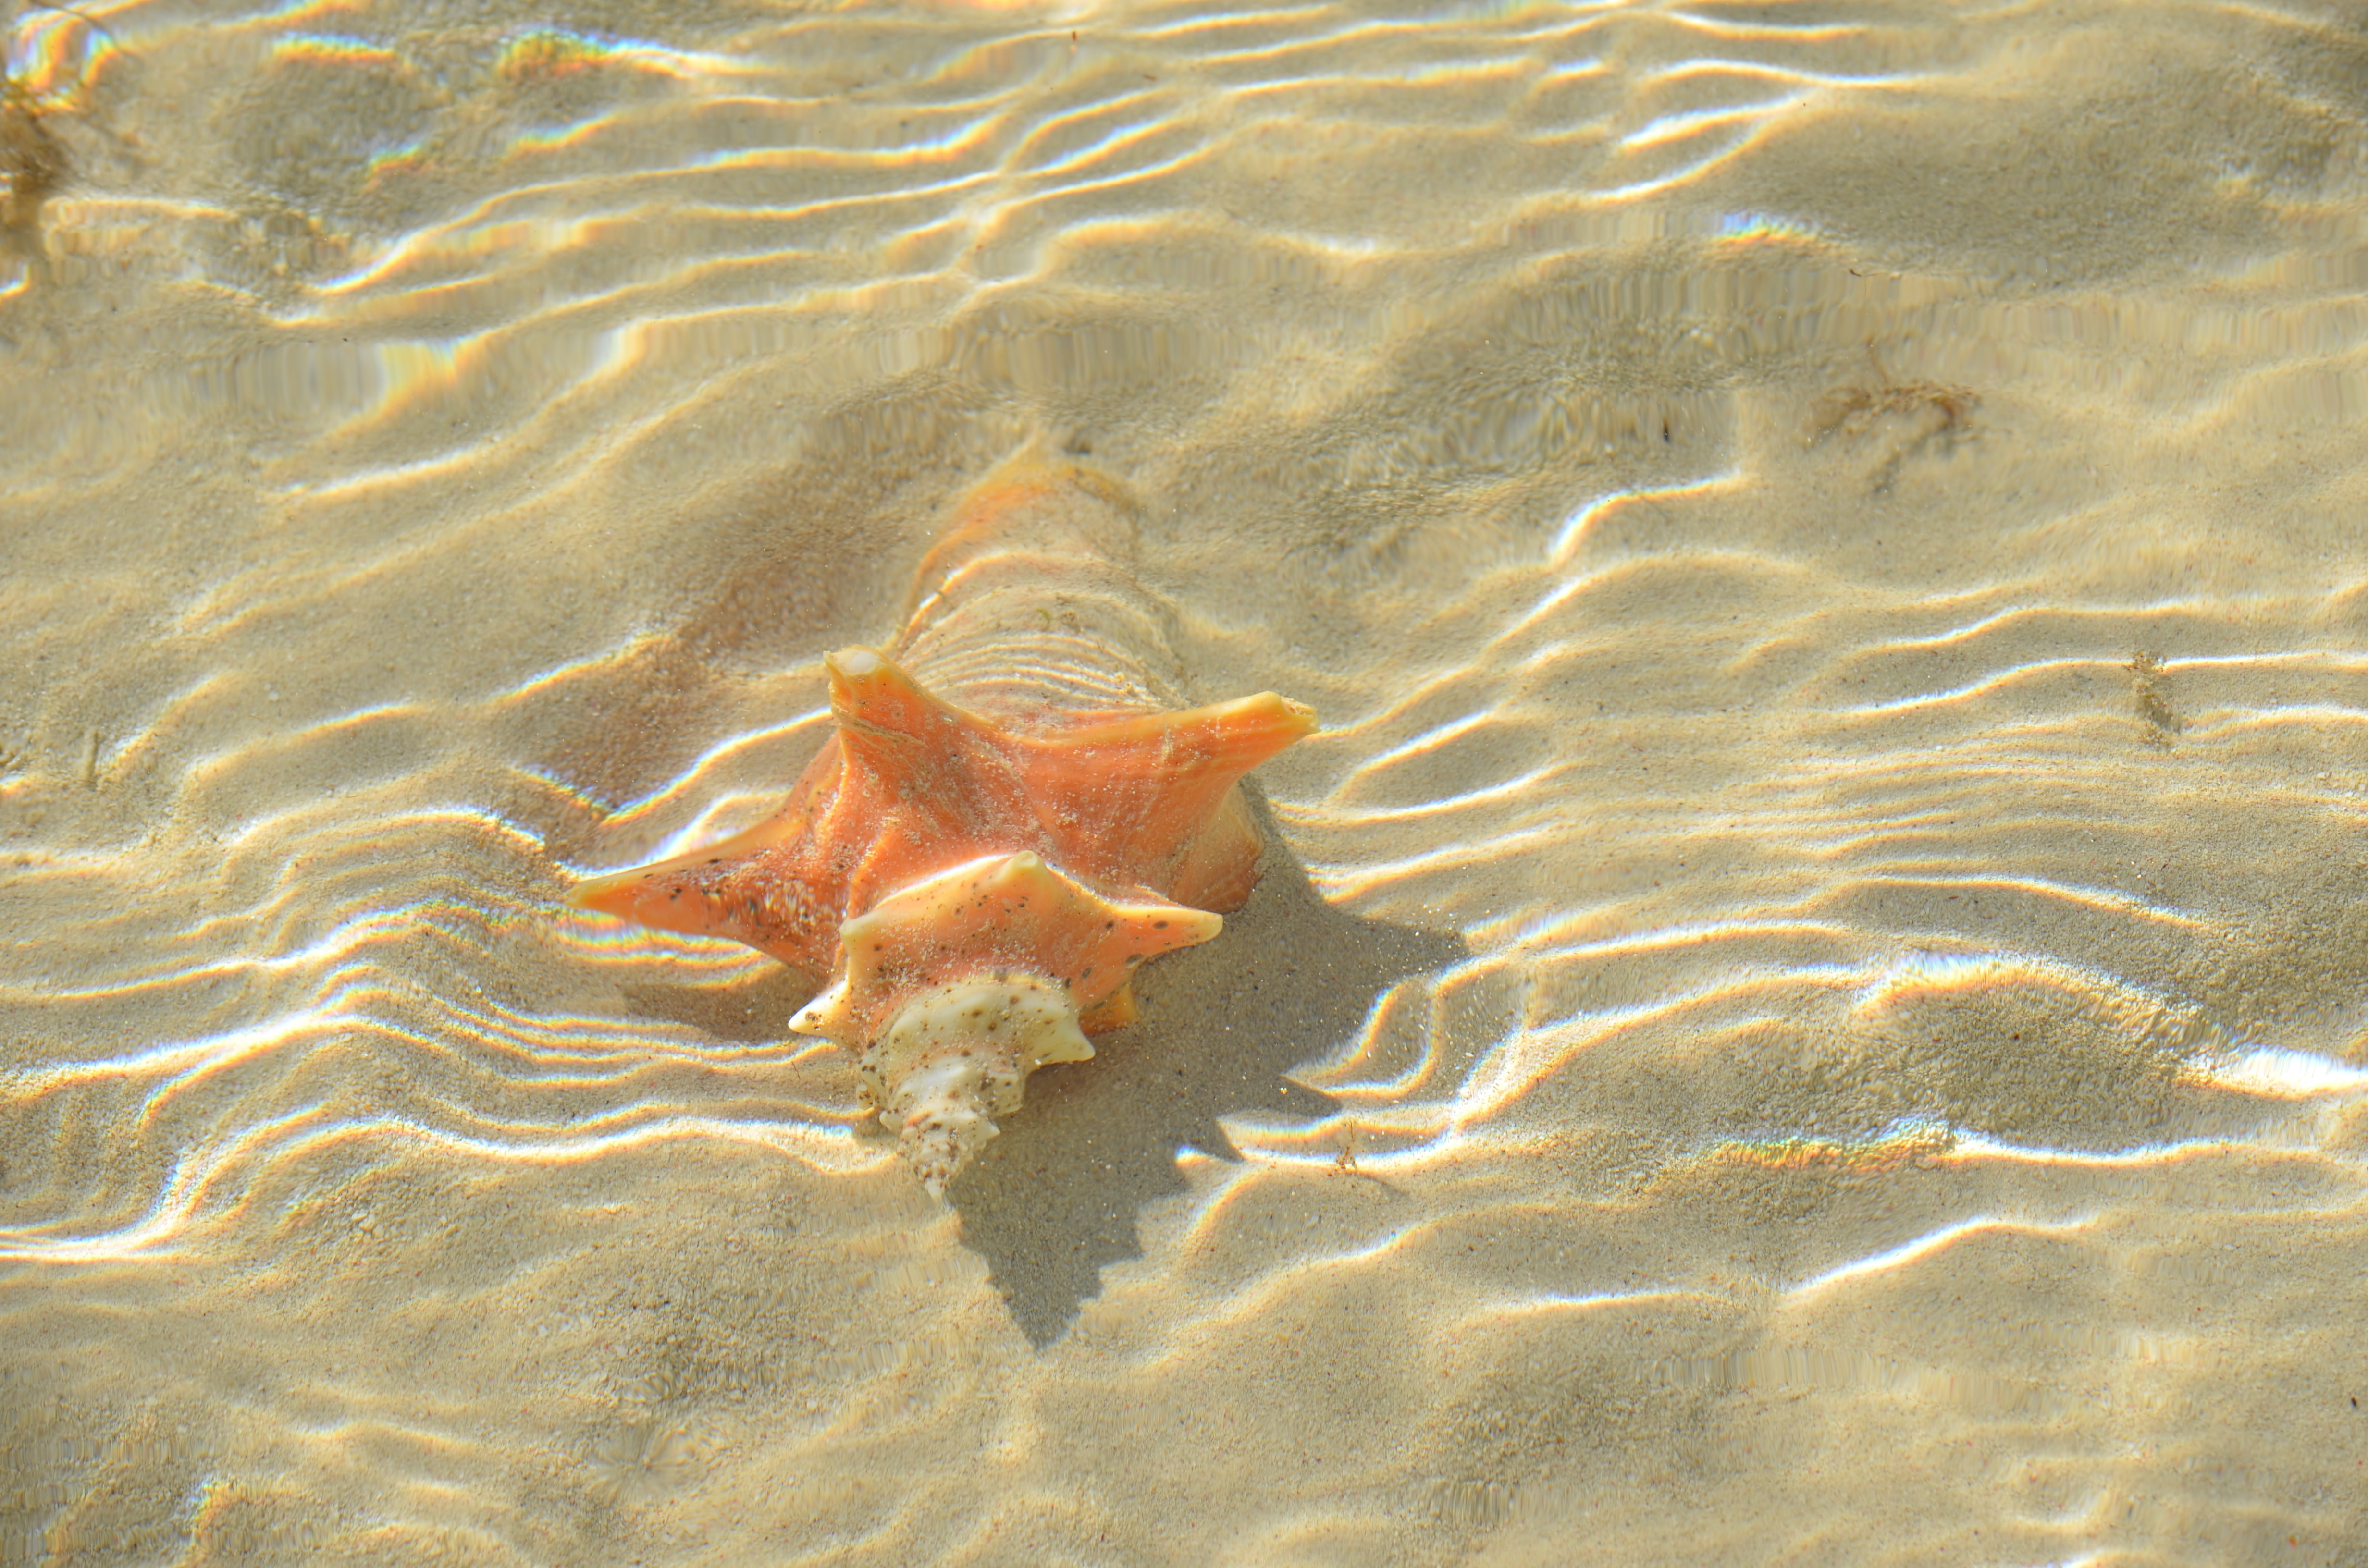 Image of a conch shell in the sparkling waters of Siesta Key Beach